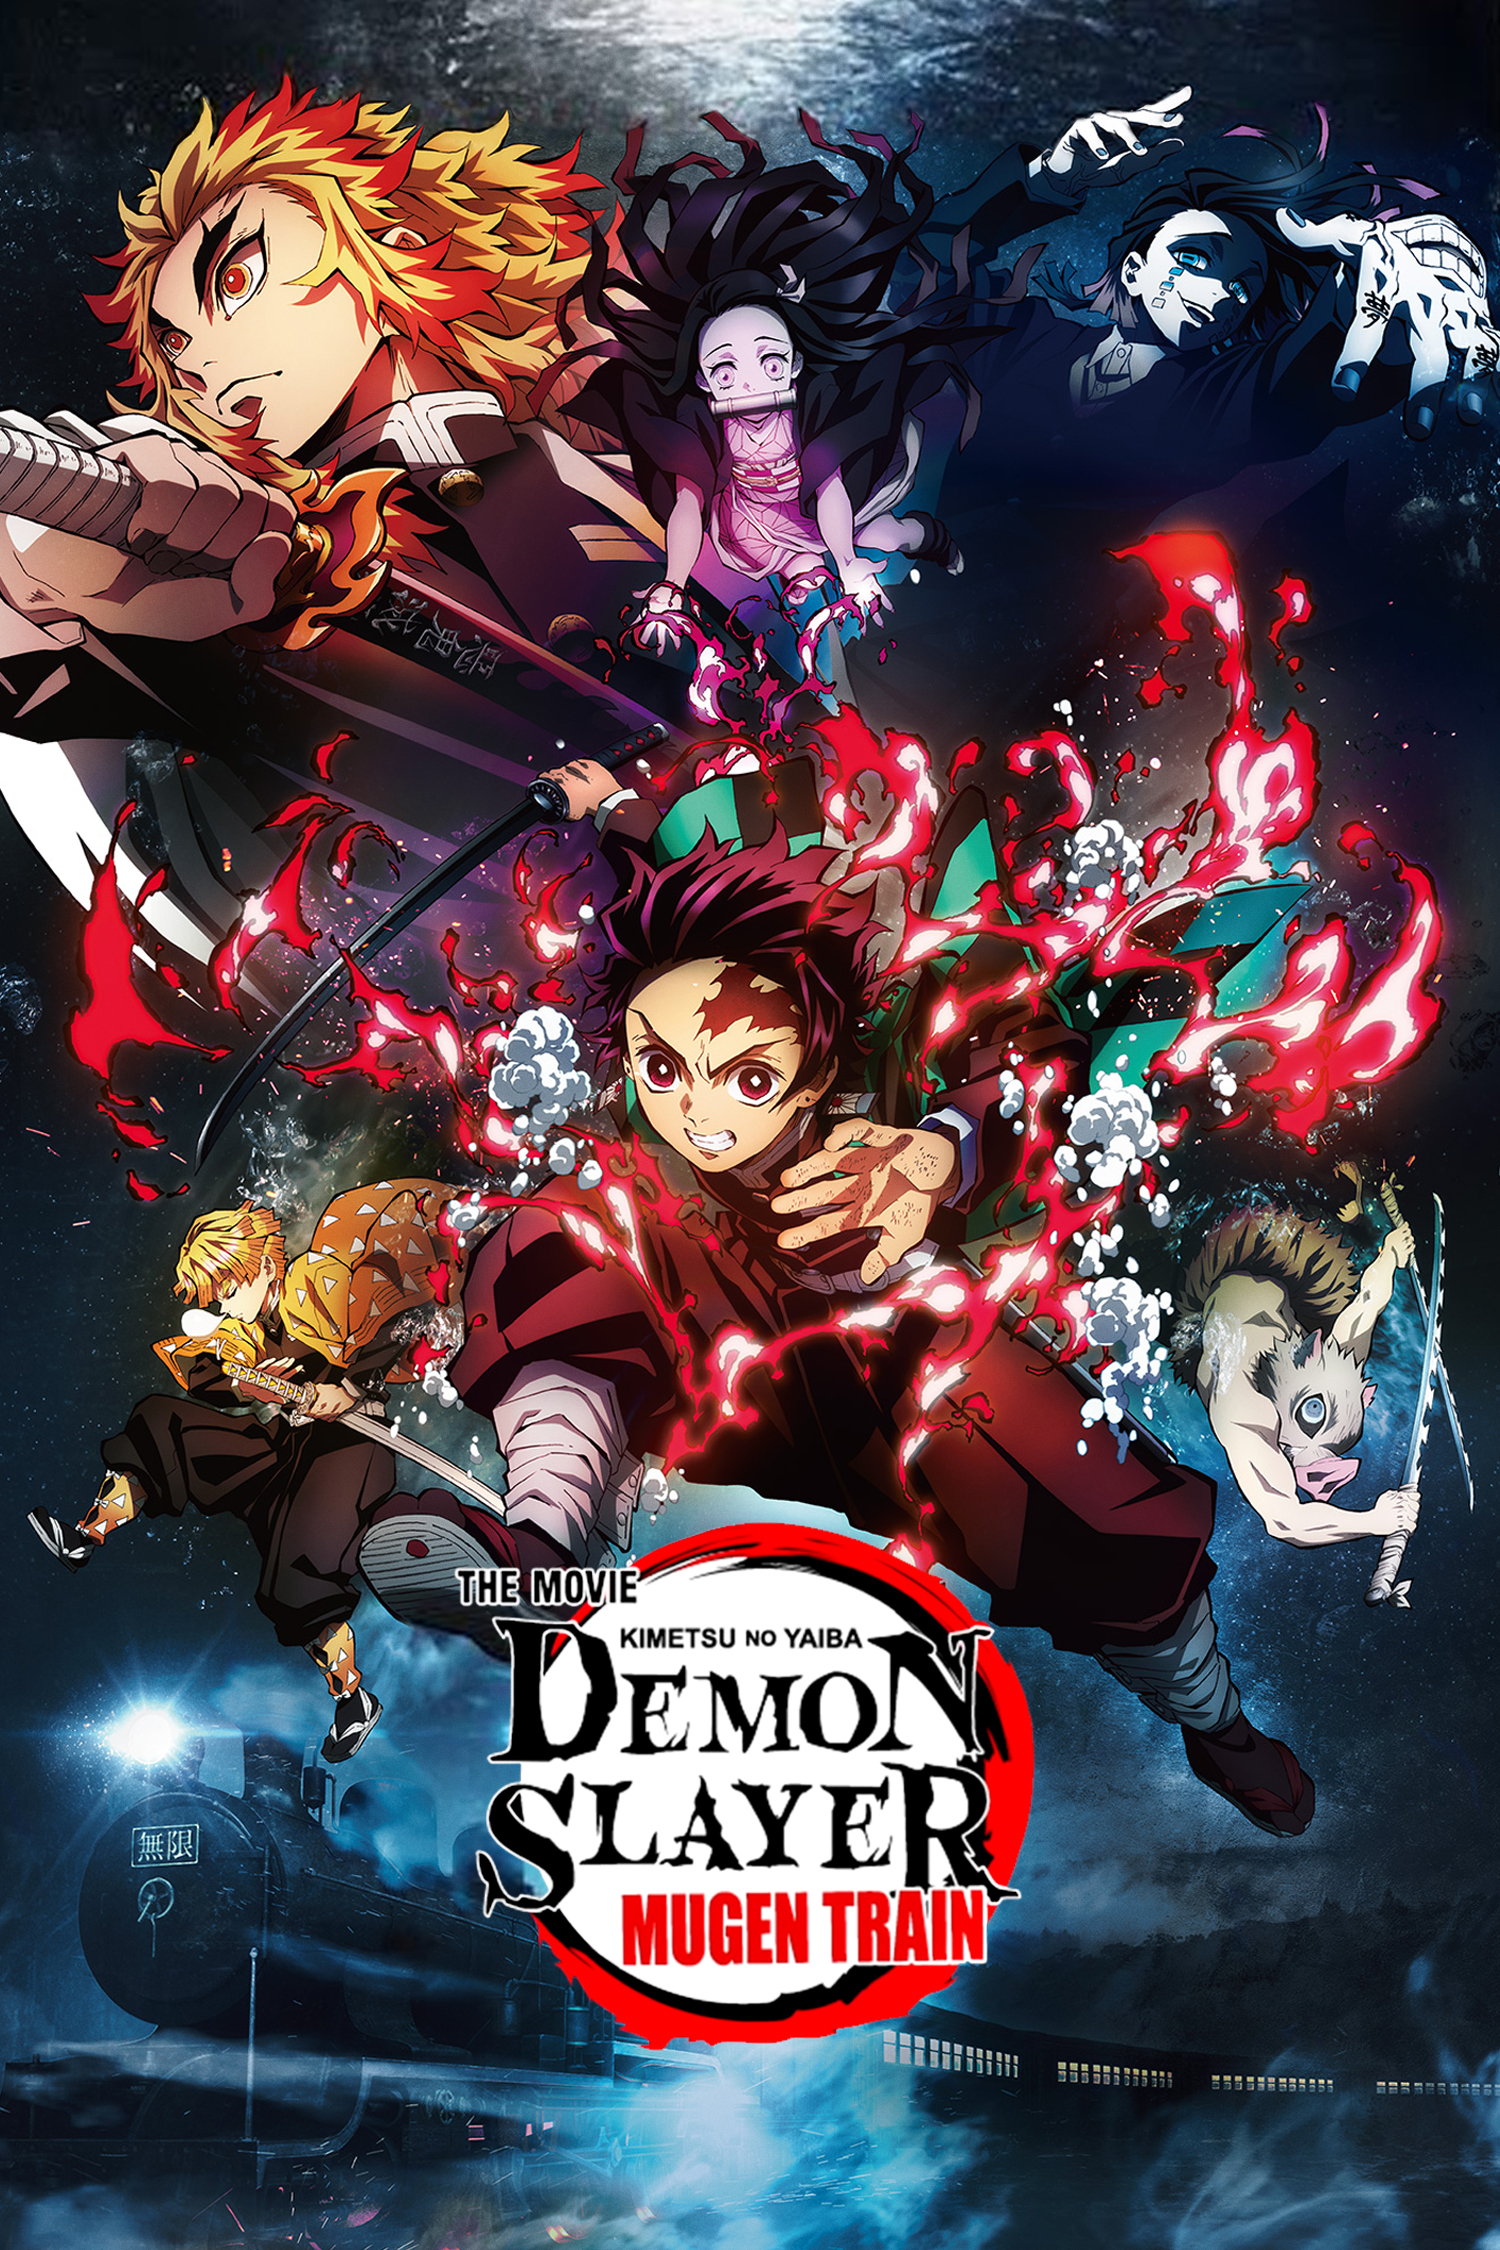 Still of Demon Slayer the Movie: Mugen Train (Kimetsu no Ya